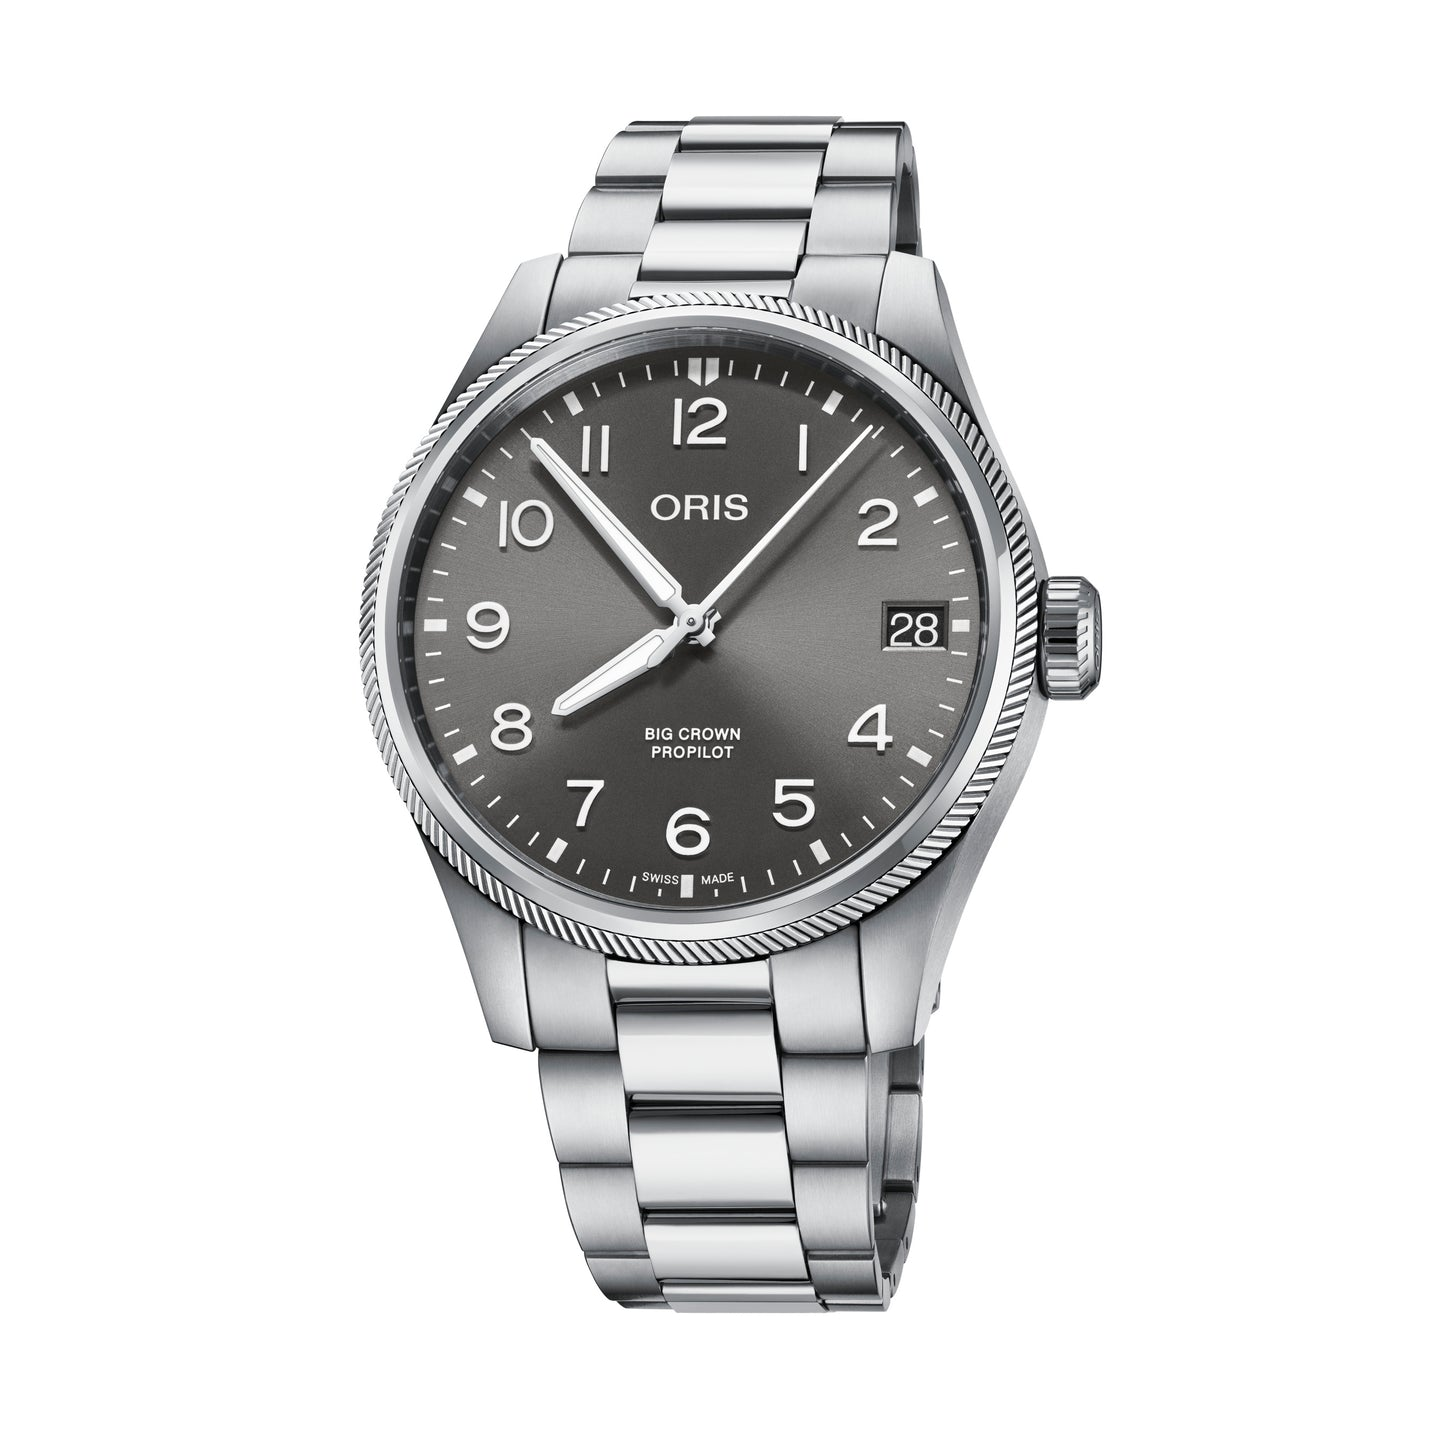 Oris Big Crown ProPilot Date Grey Dial Watch with Bracelet